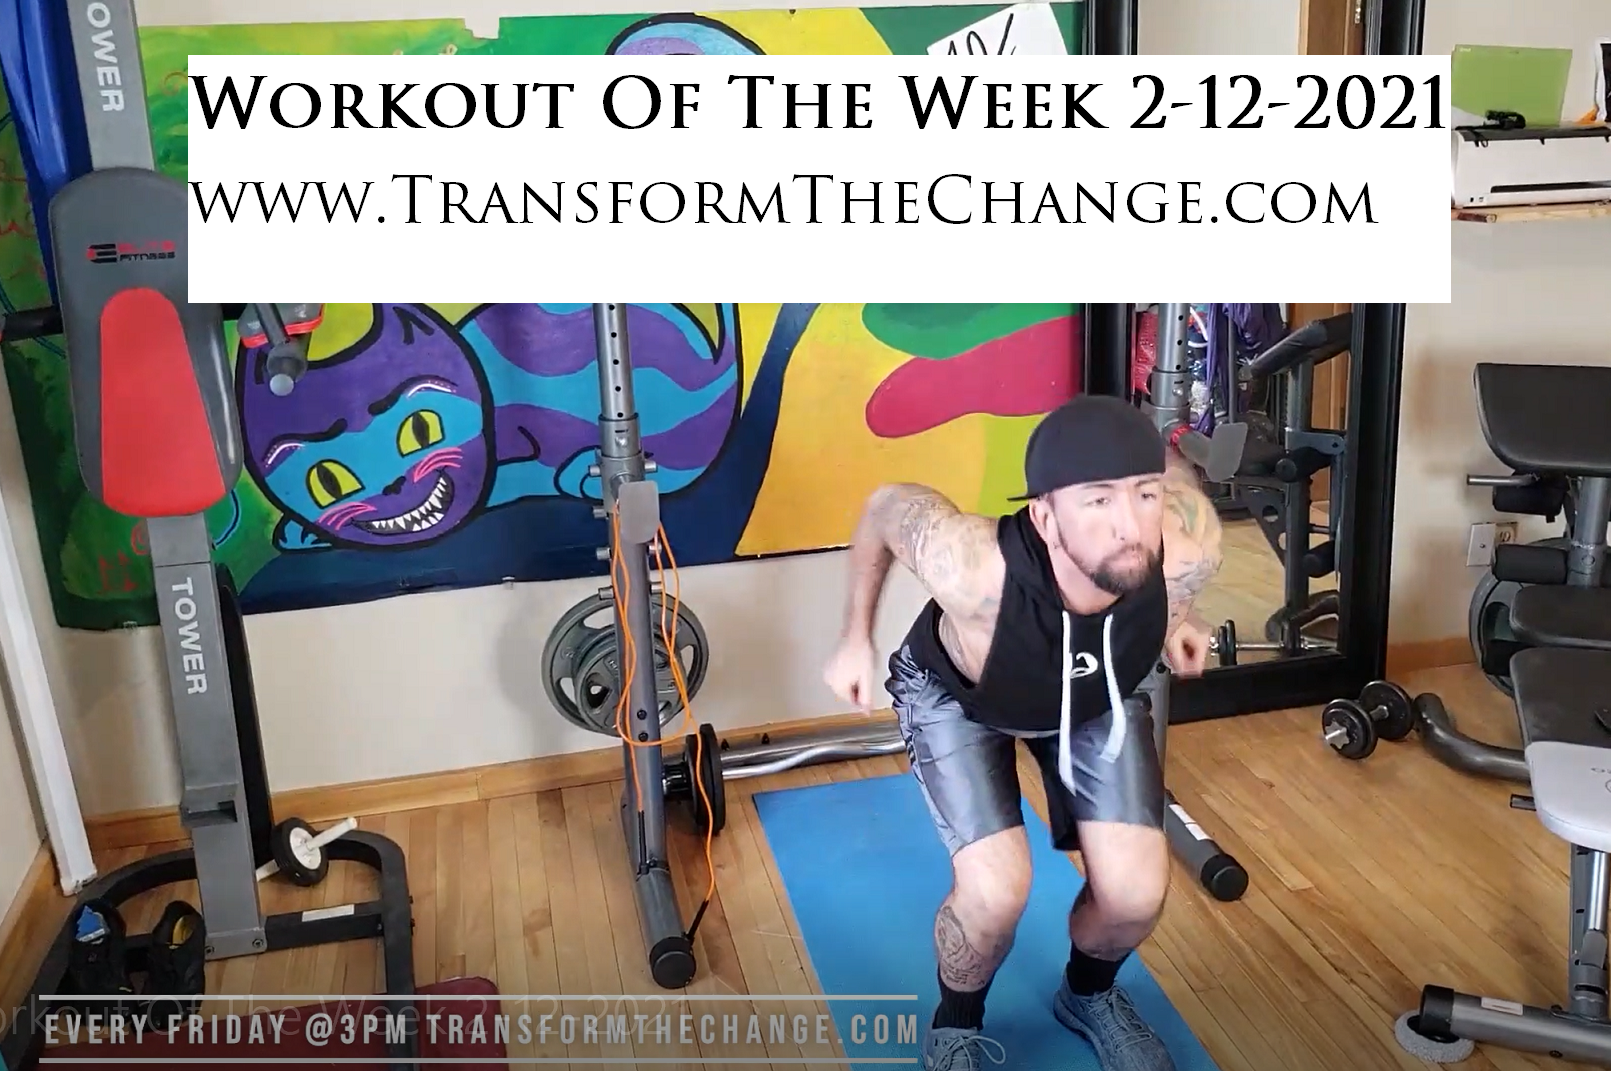 Workout Of The Week 2-12-2021